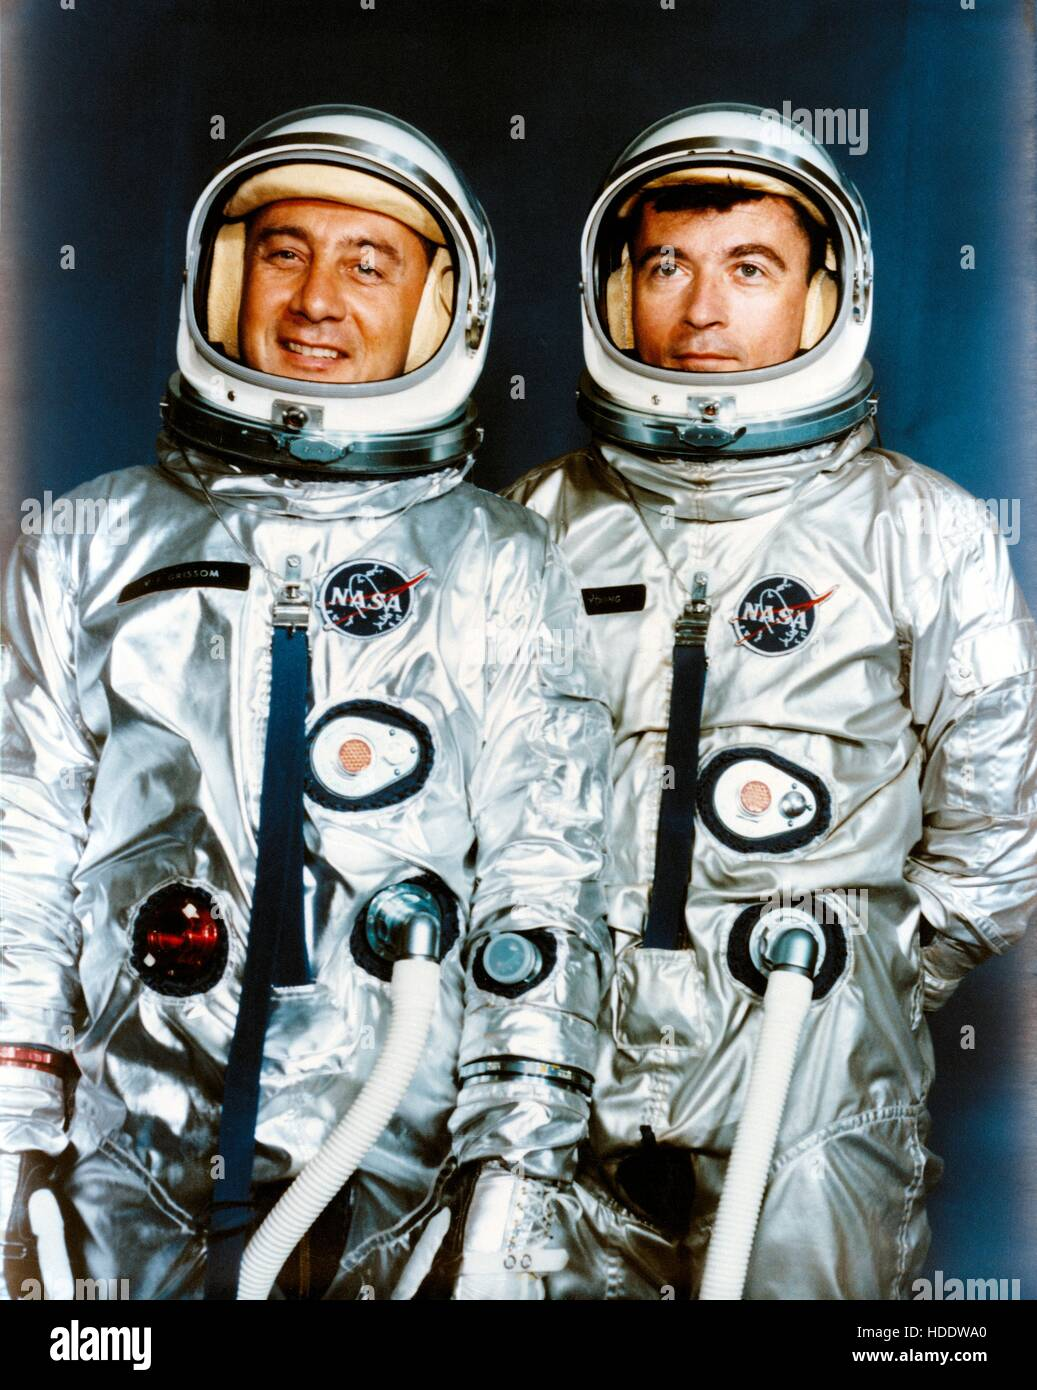 Official NASA portrait of Gemini 3 astronauts Gus Grissom (left) and John Young April 13, 1964. Stock Photo